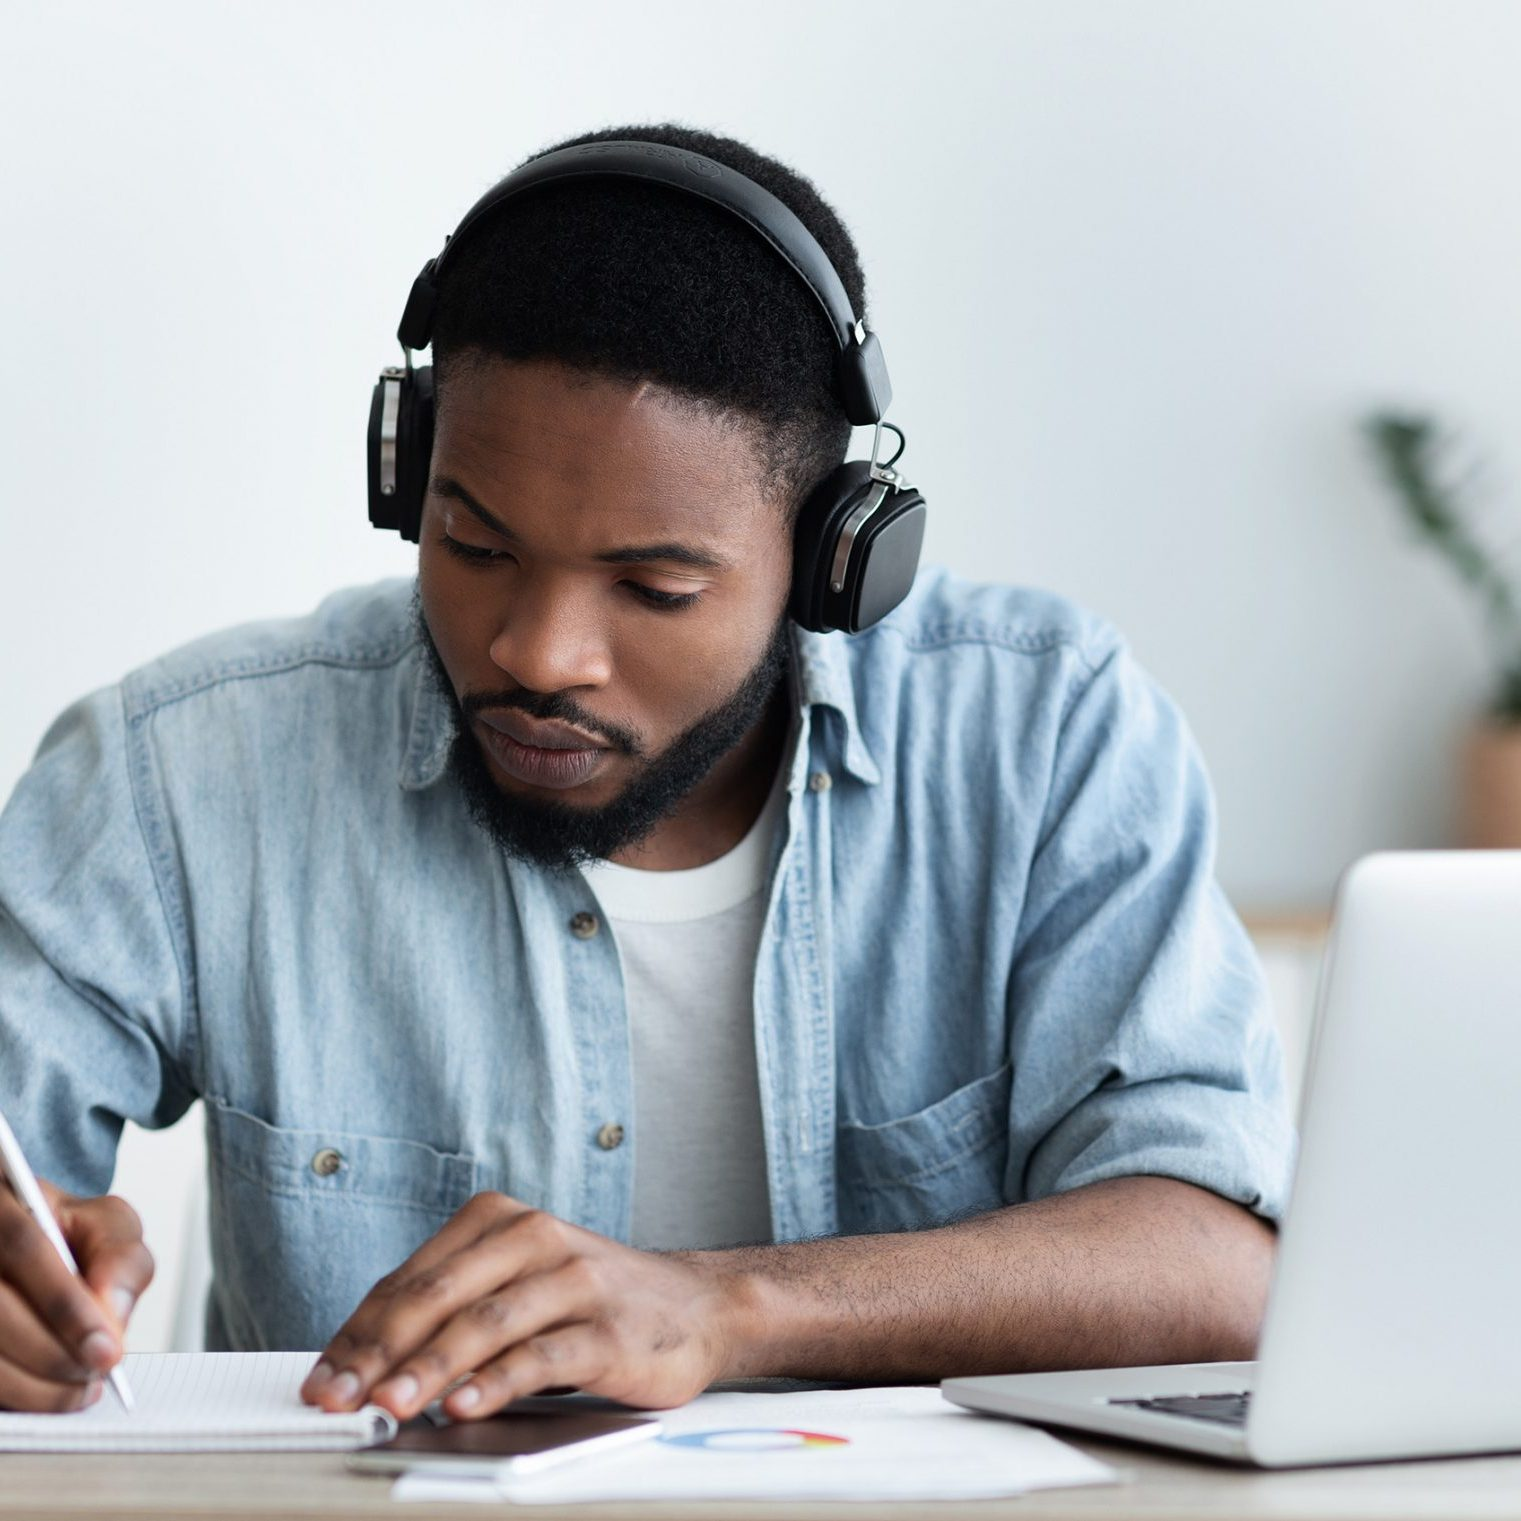 Concentrated african american guy in headphones studying foreign language online through video conference and making notes in notebook, panorama with copy space